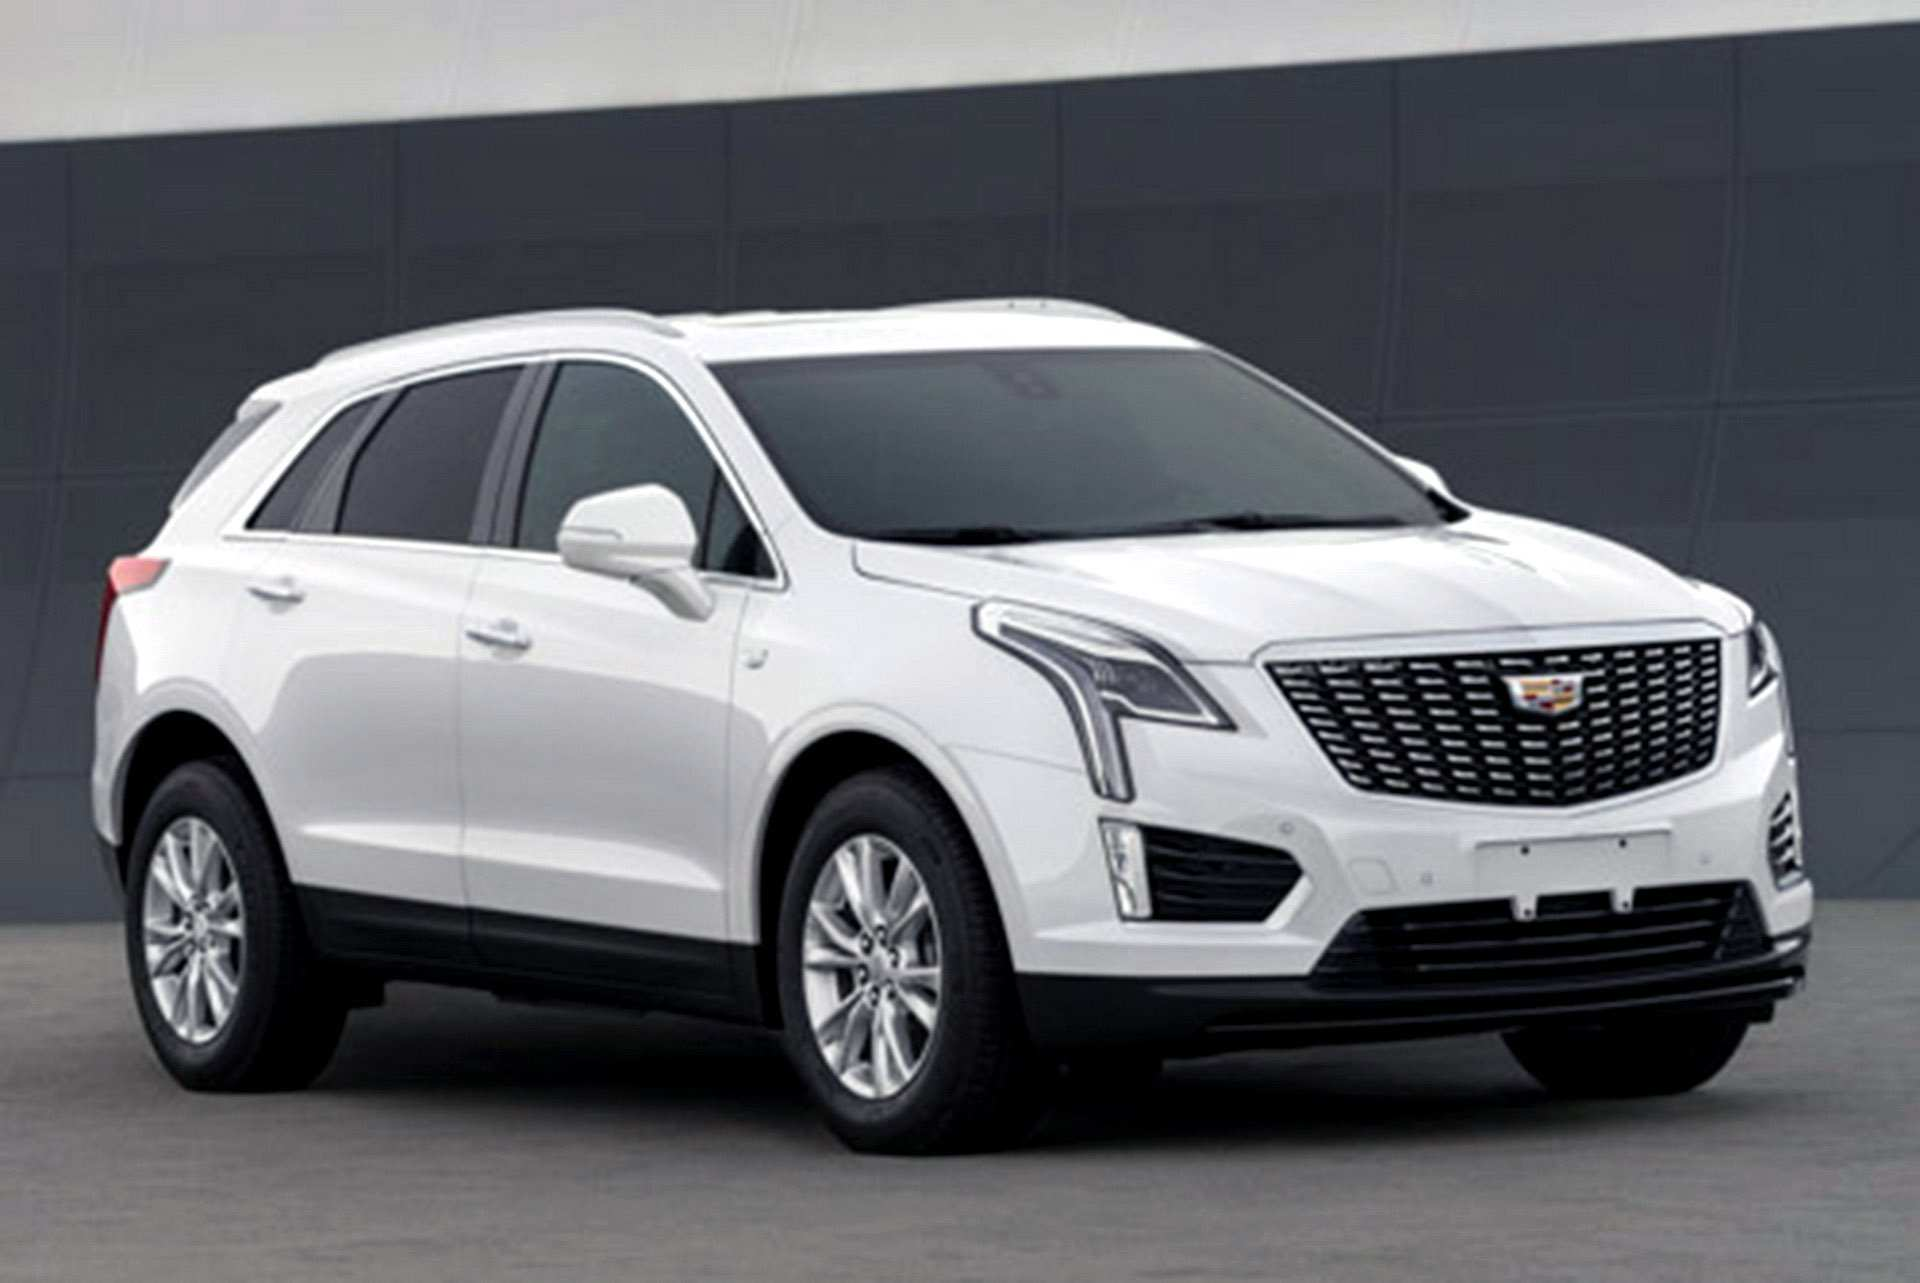 59 All New 2019 Spy Shots Cadillac Xt5 Exterior And Interior